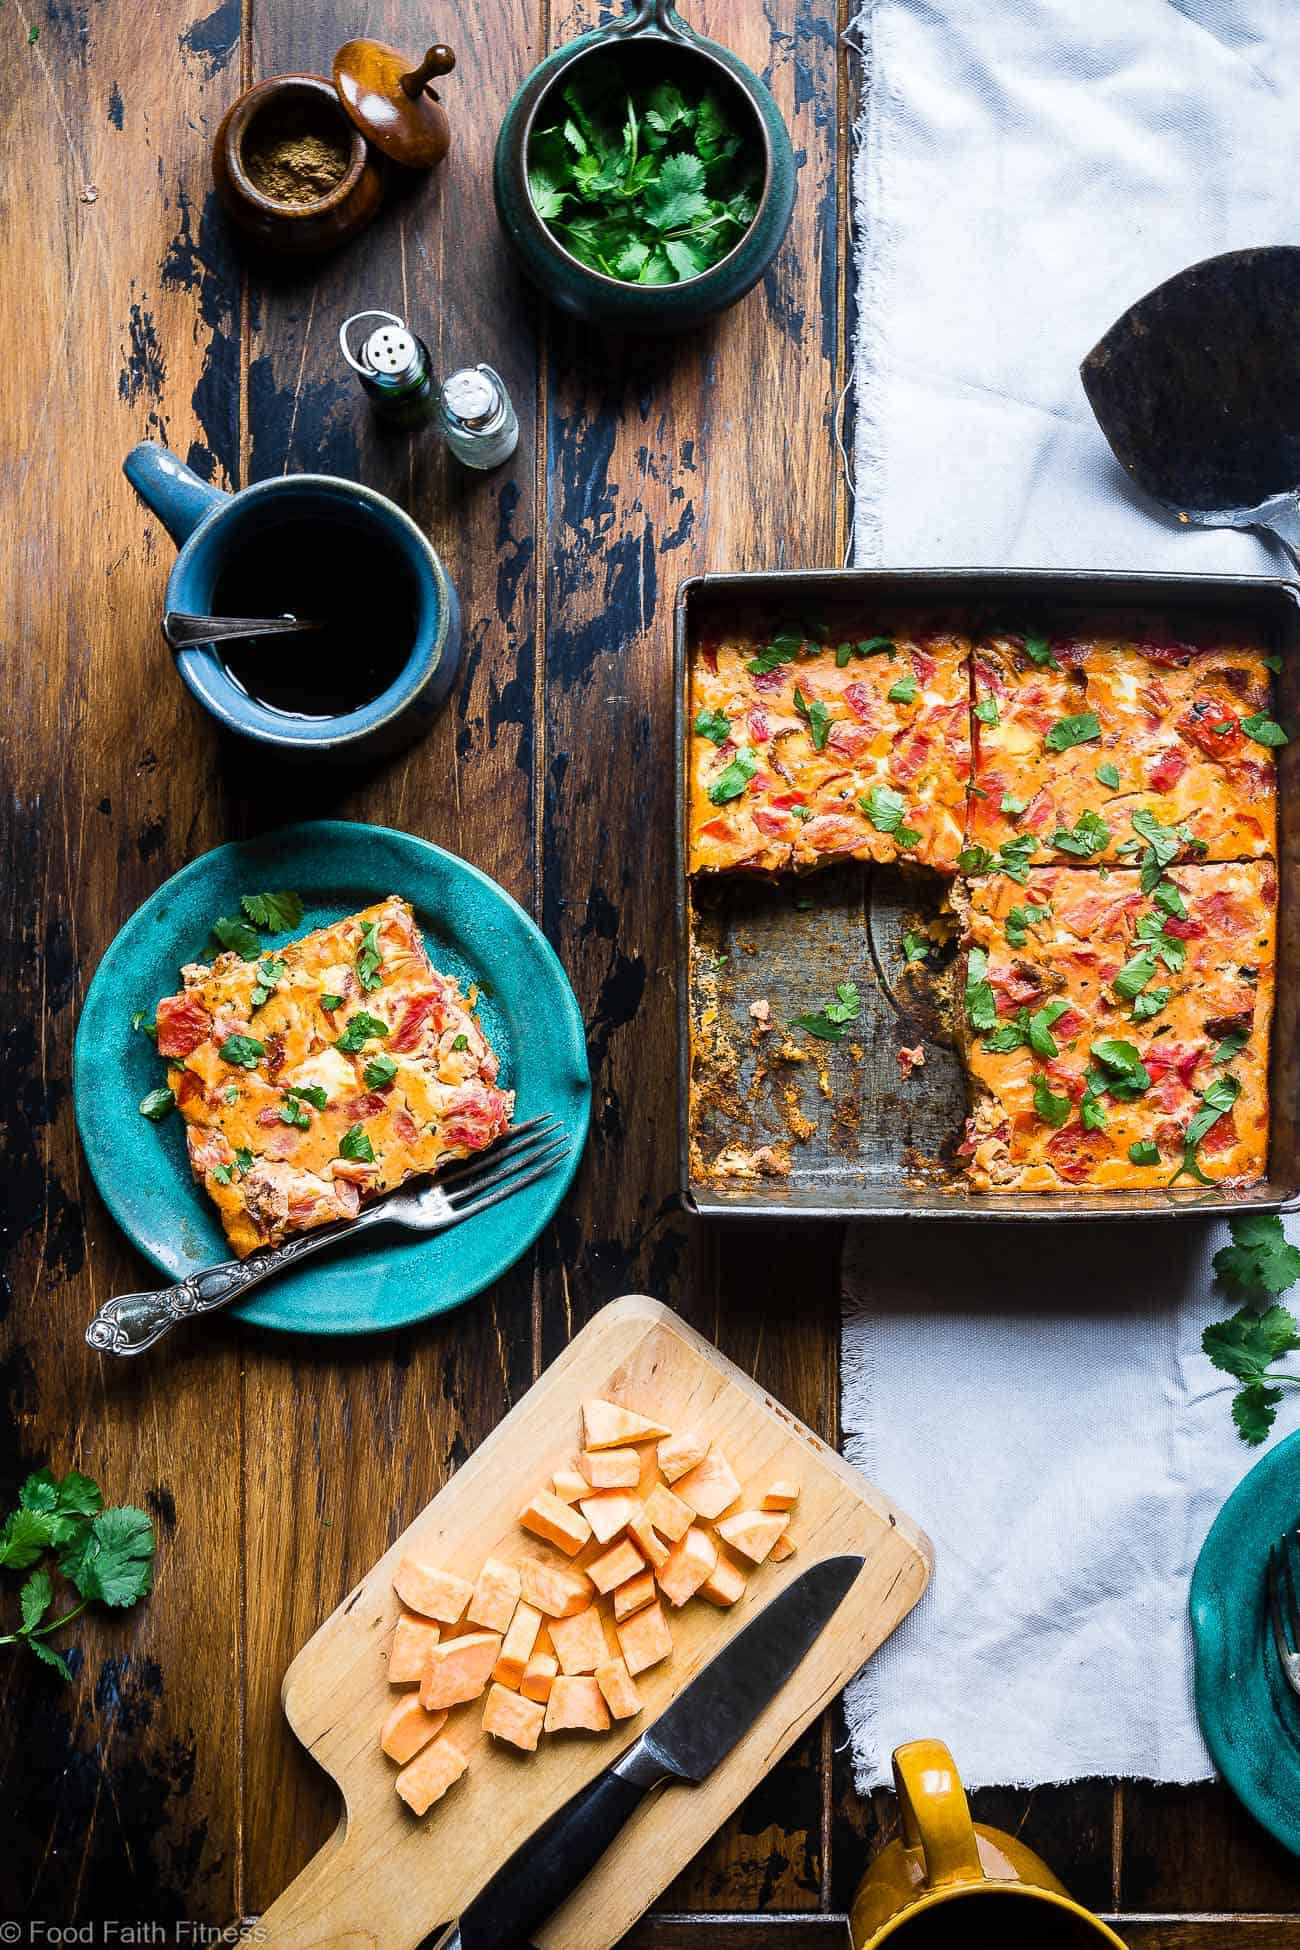 Healthy Gluten Free Paleo Egg Casserole - This healthy, gluten free,  paleo breakfast casserole is an easy breakfast or brunch with a little taste of the Middle East!  Grain/dairy/sugar free and only 200 calories a serving! | #Foodfaithfitness | #whole30 #paleo #glutenfree #healthy #breakfast